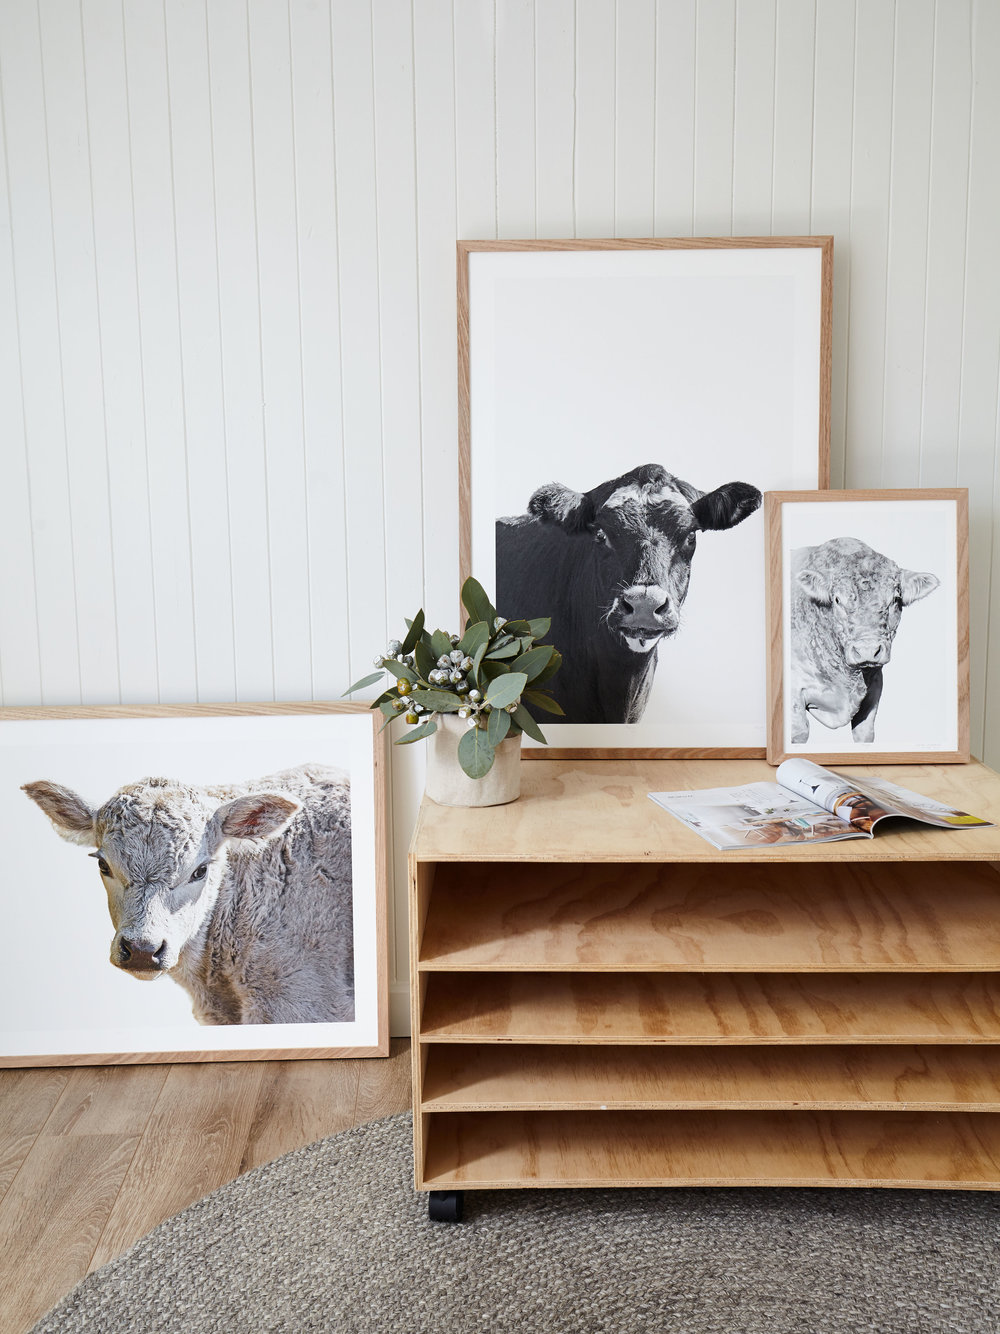 Maitland Street Interiors, Sarah Elshaug, Interior Stylist Melbourne, Elsie + Hugo, Limited Edition Artwork, Cow Prints